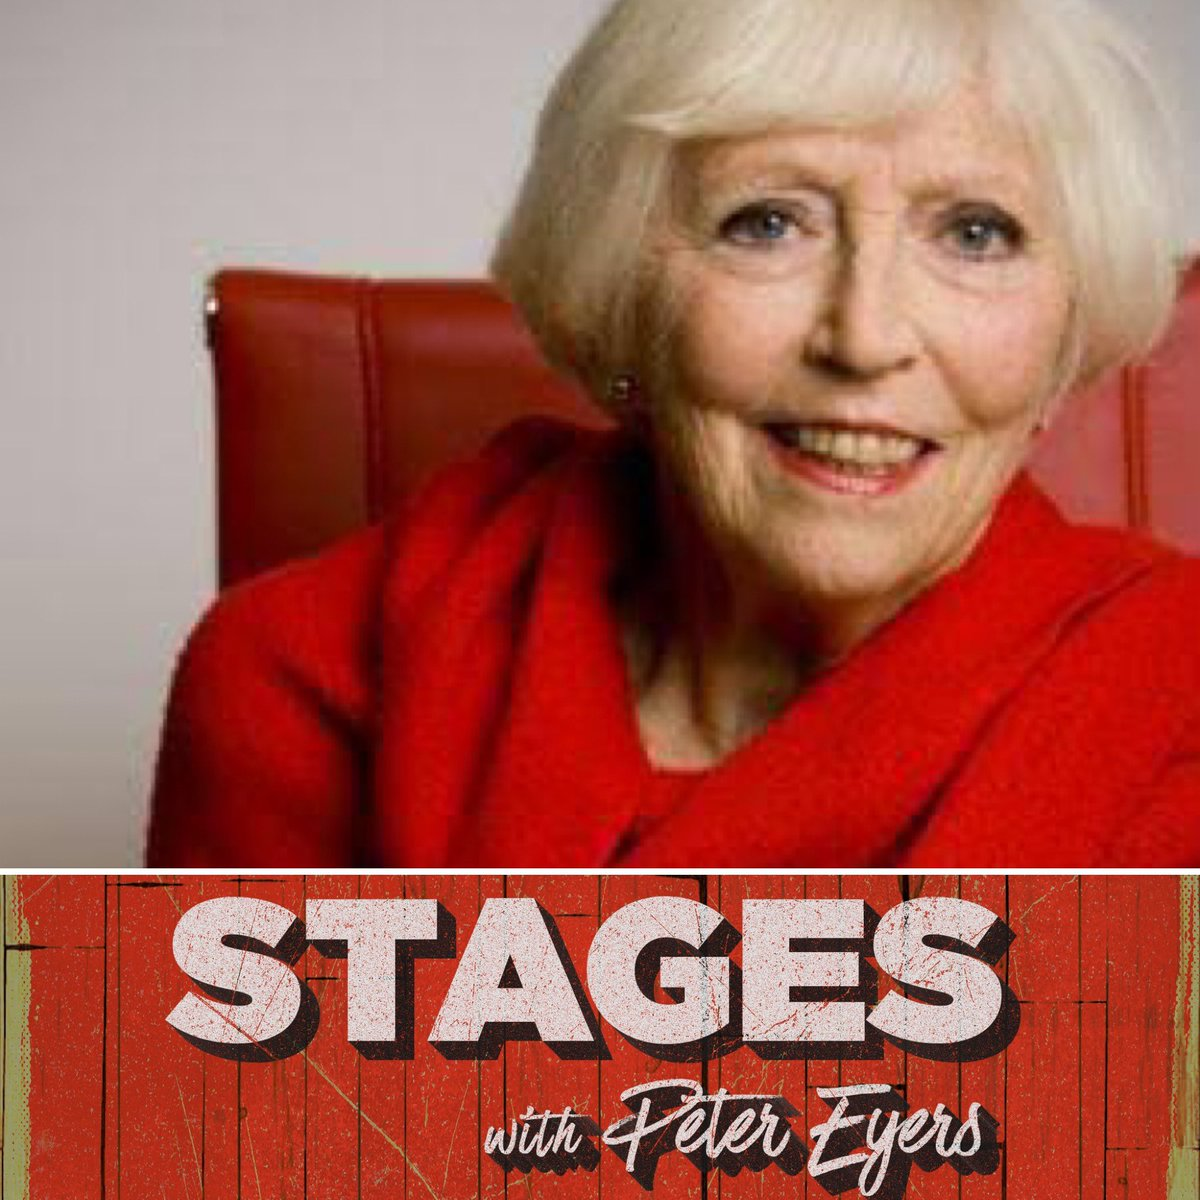 STAGES with Peter Eyers - 'You're Soaking In It' - Dance and Theatre Veteran, Robina Beard https://t.co/icEosD4rwX via @whooshkaa @PeterEyers #stages #youresoakinginit https://t.co/MsqdVGrlJm